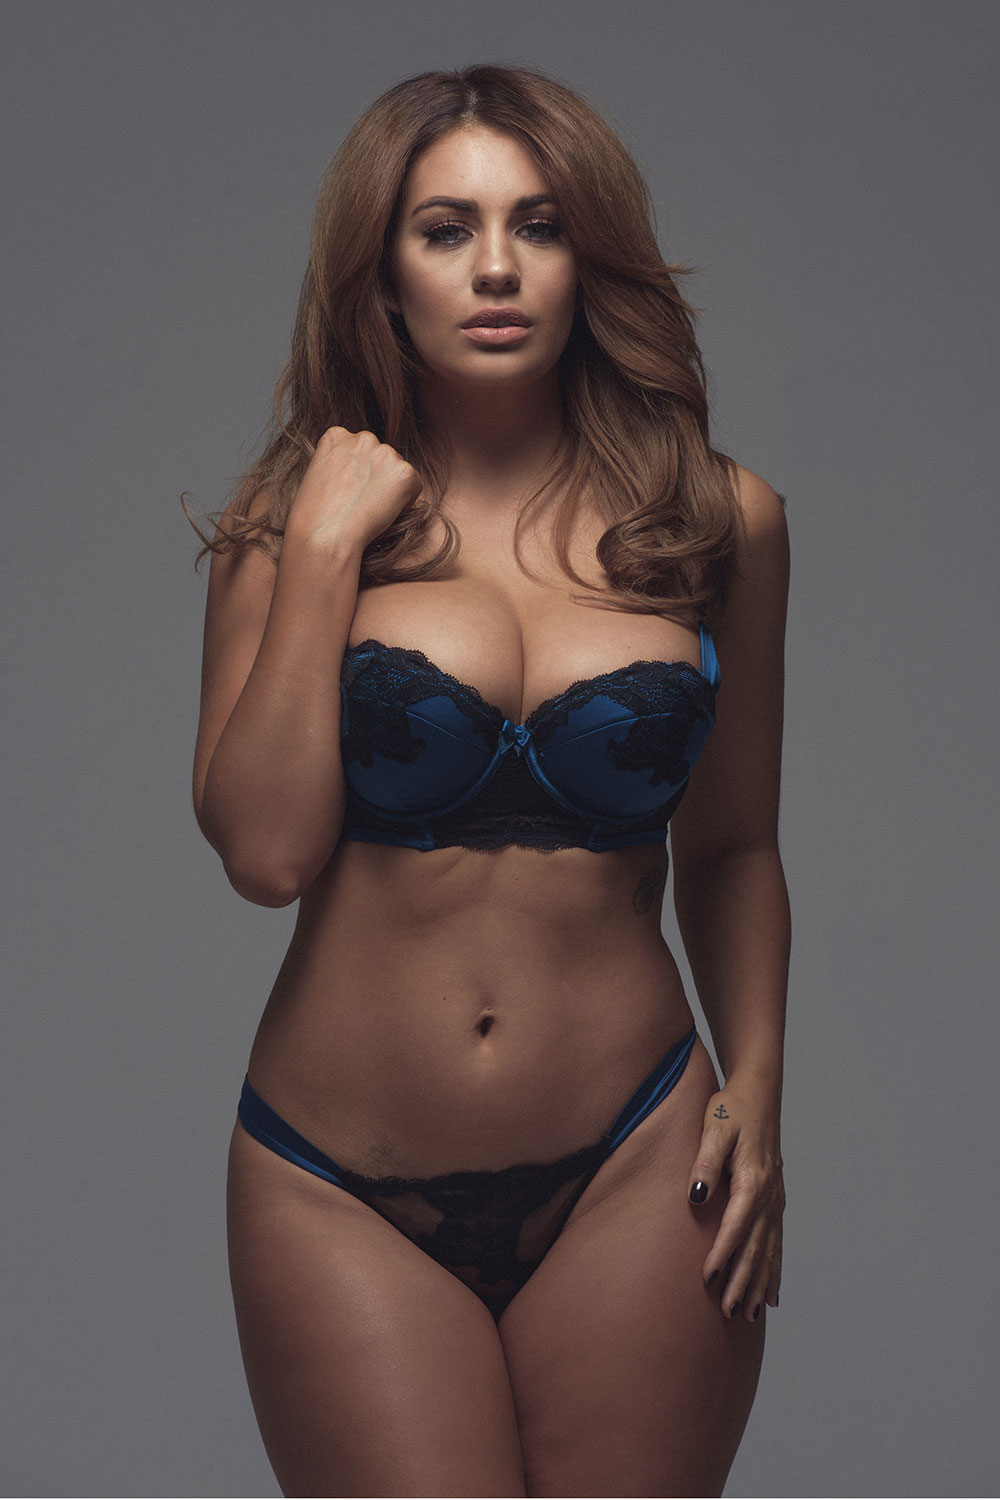 Holly-Peers-Sexy-and-Topless-1-2